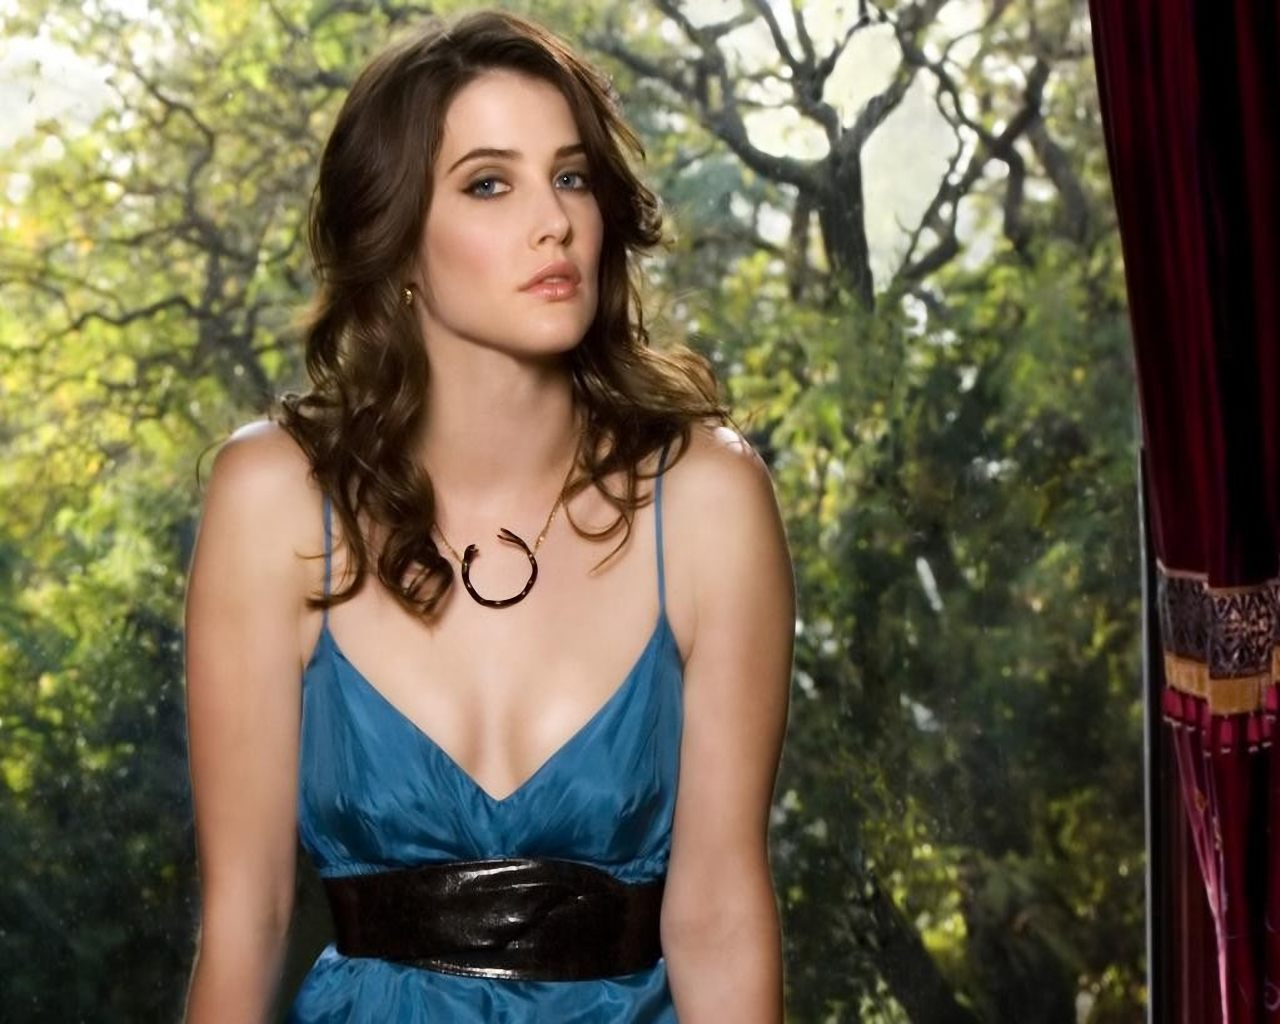 panties Leaked Cobie Smulders naked photo 2017